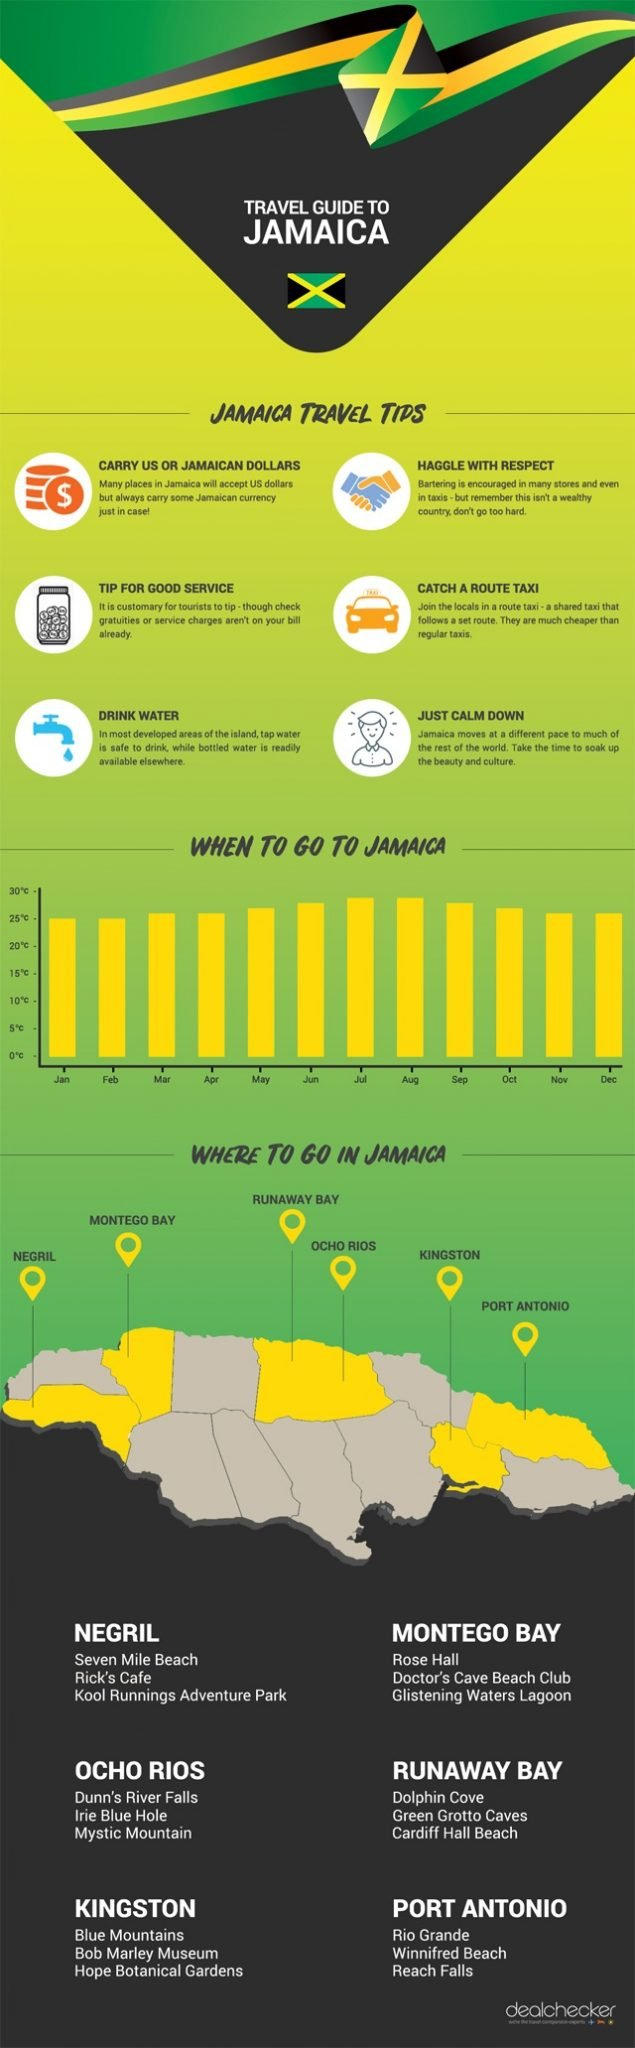 travel to jamaica